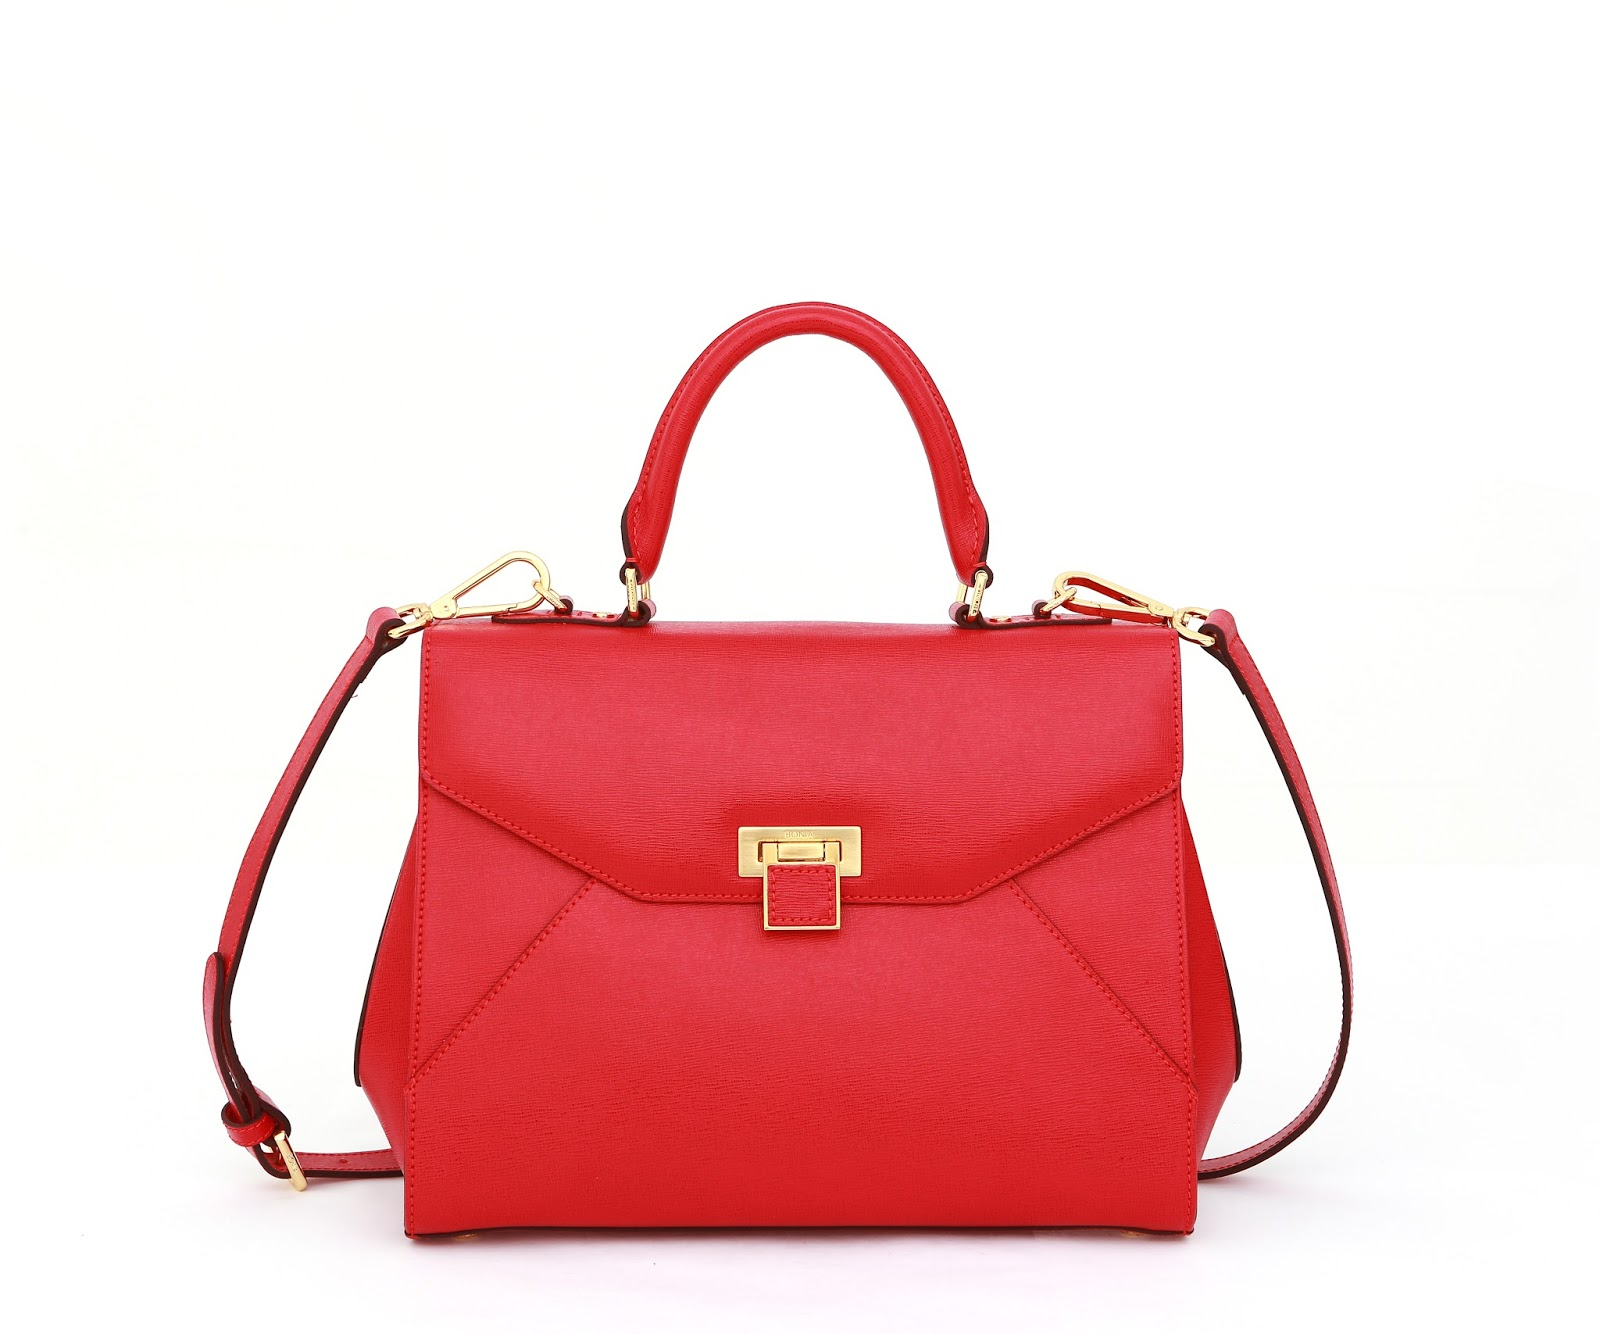 The Way A Woman Carries Her Bag Is Characteristic Says Some Psychologists Bagology Name